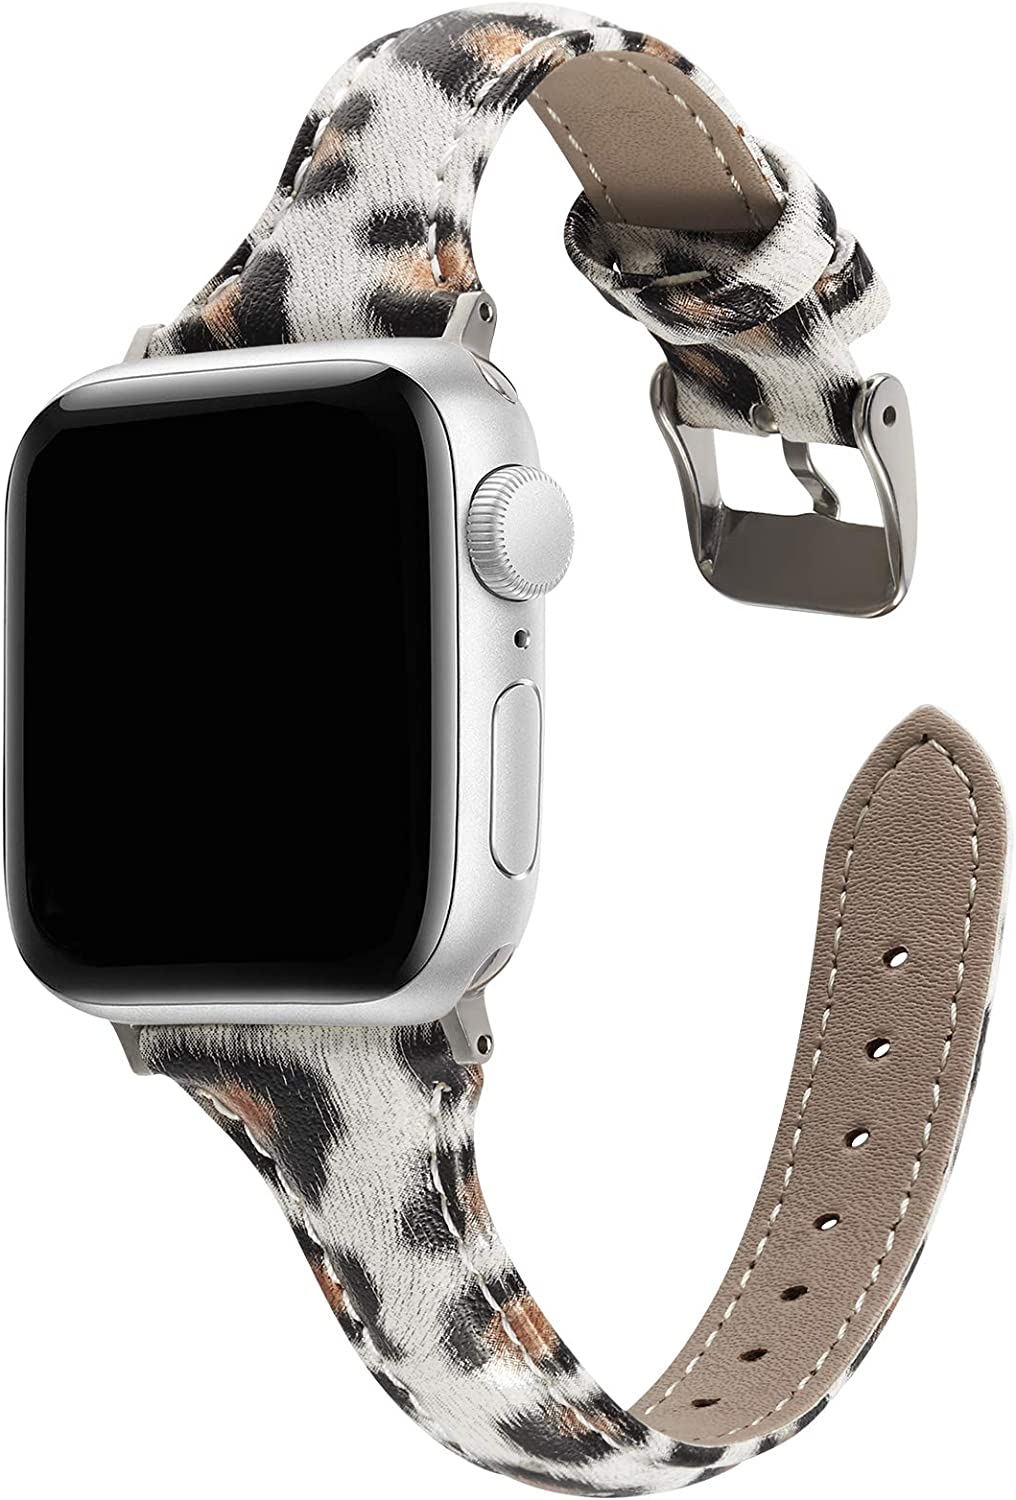 TCSHOW 44mm 42mm Slim Leather Leopard Style Watch Band Strap Wrist Band with Silver Metal Adapter Replacement for iWatch Series 6/5/4/3/2/1(Not for iWatch 40mm/38mm)